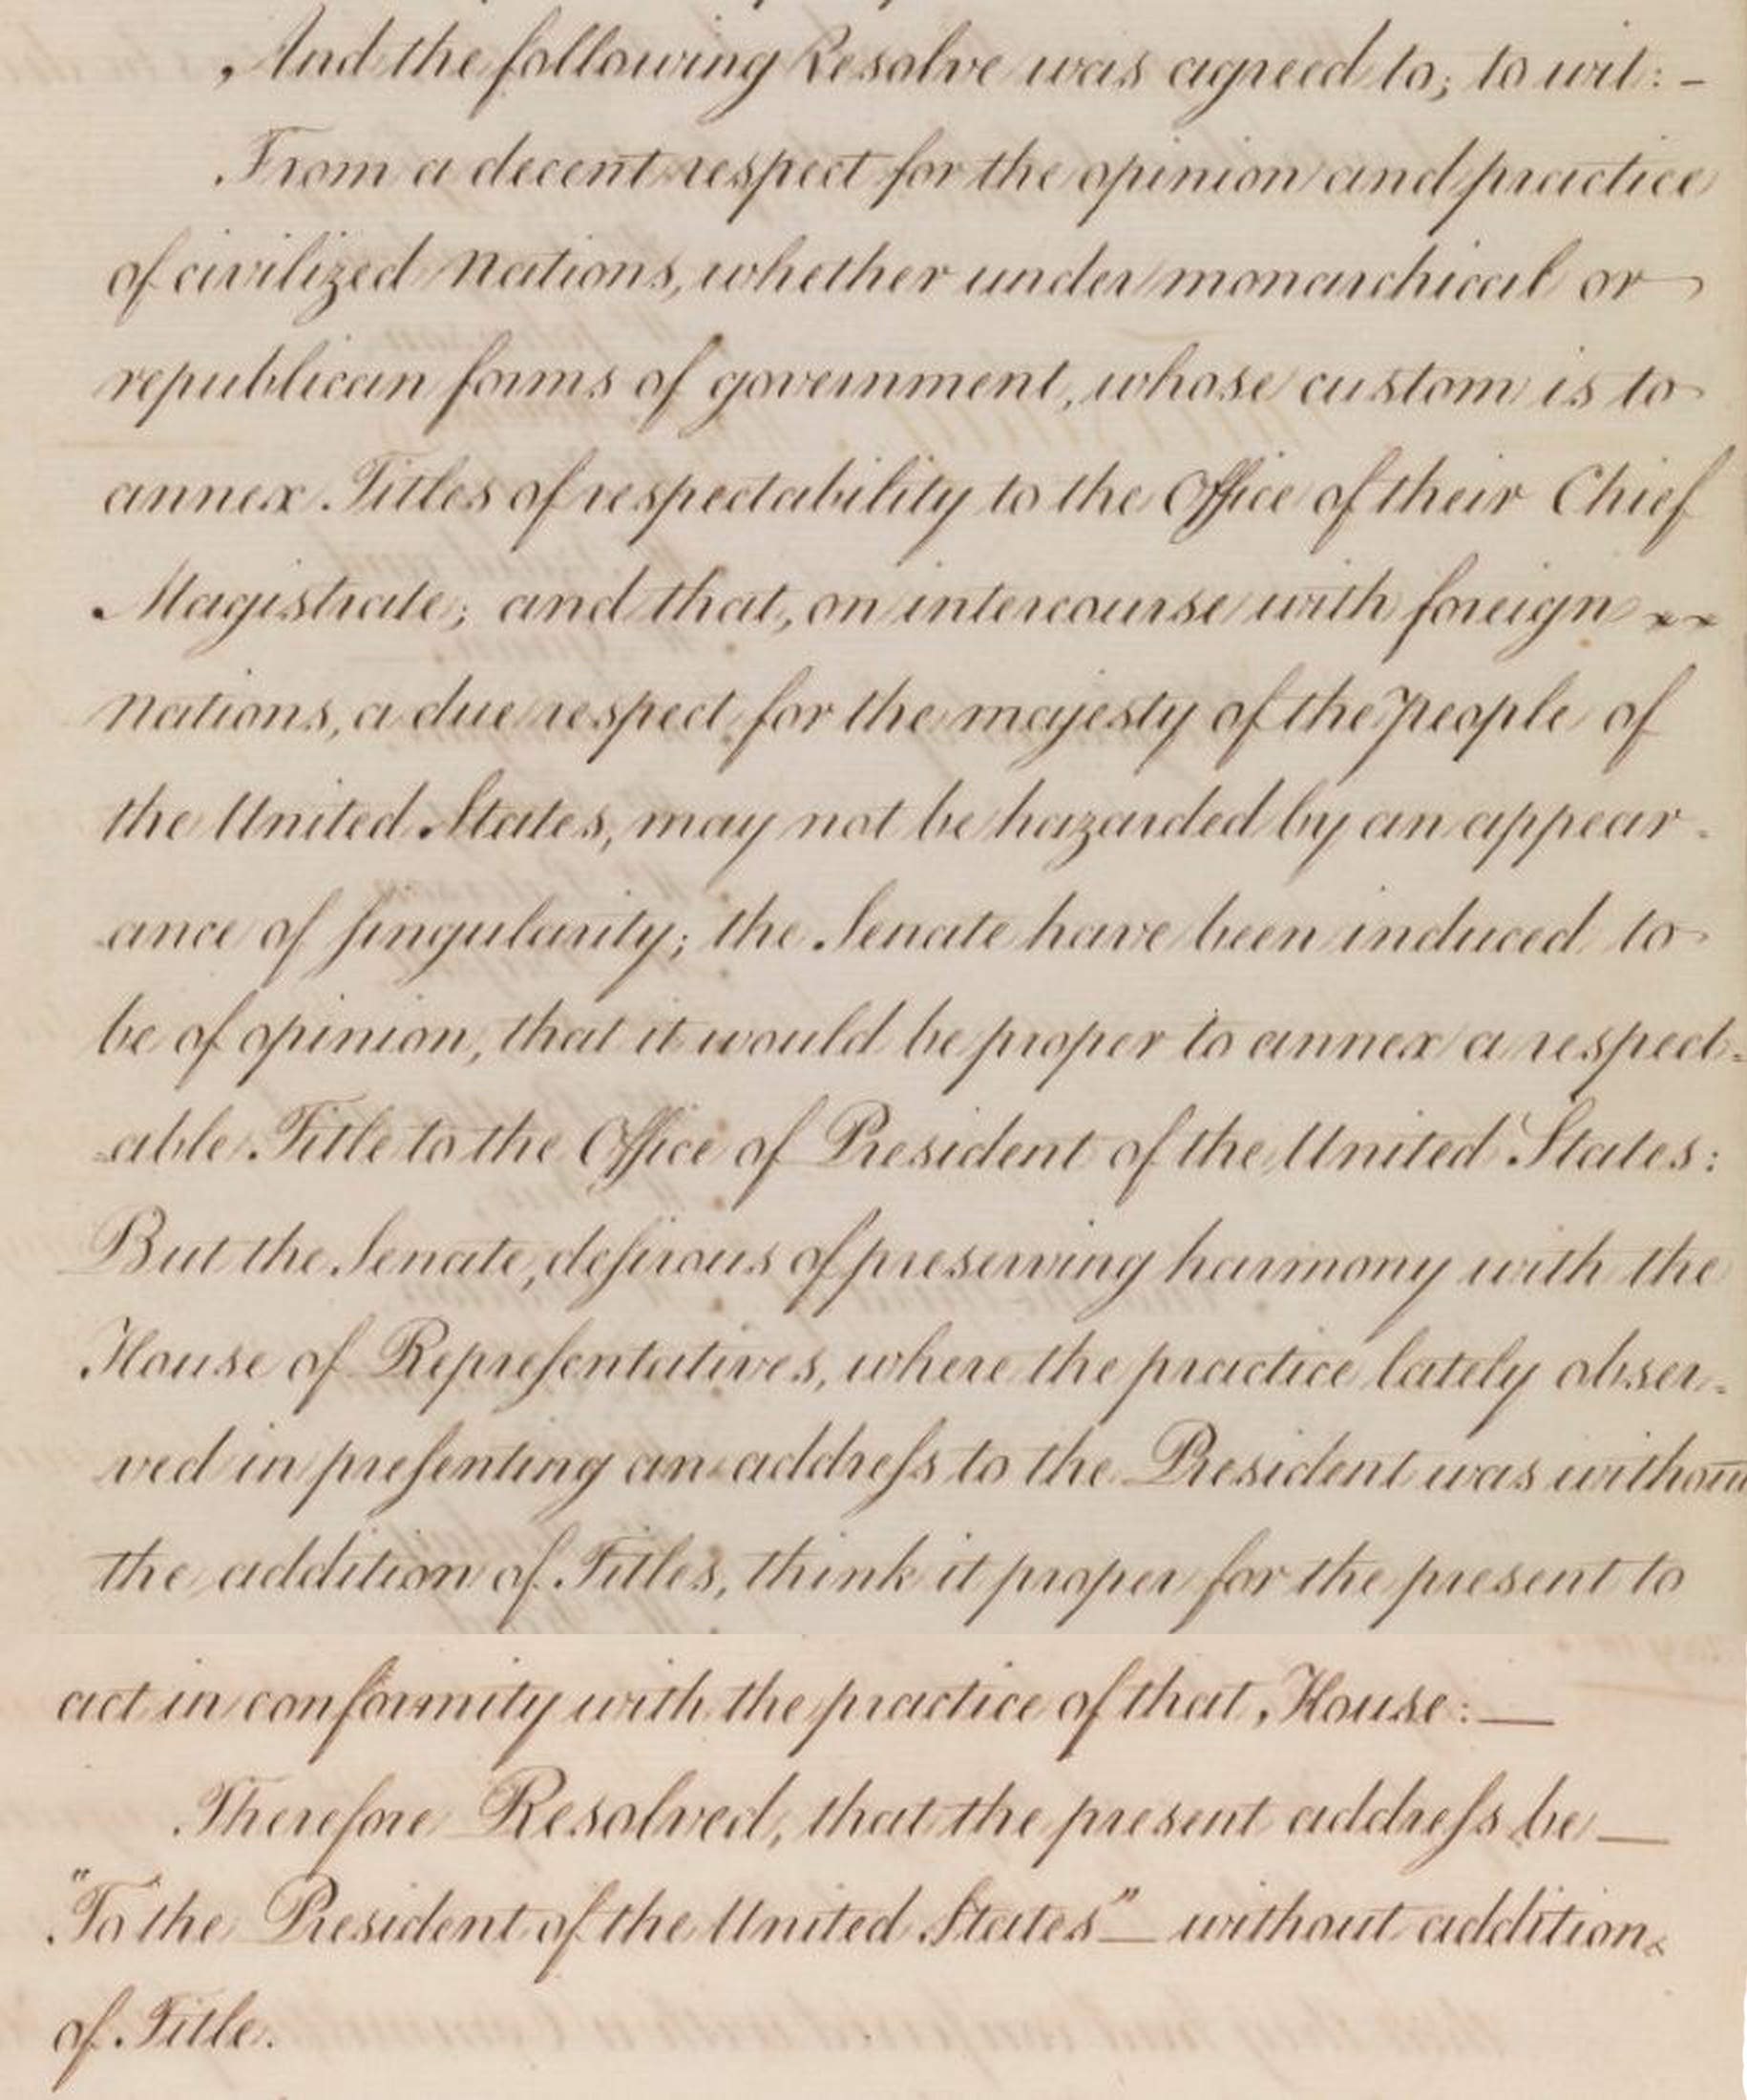 Senate Journal showing resolution on titles for the President, May 14, 1789; Records of the U.S. Senate